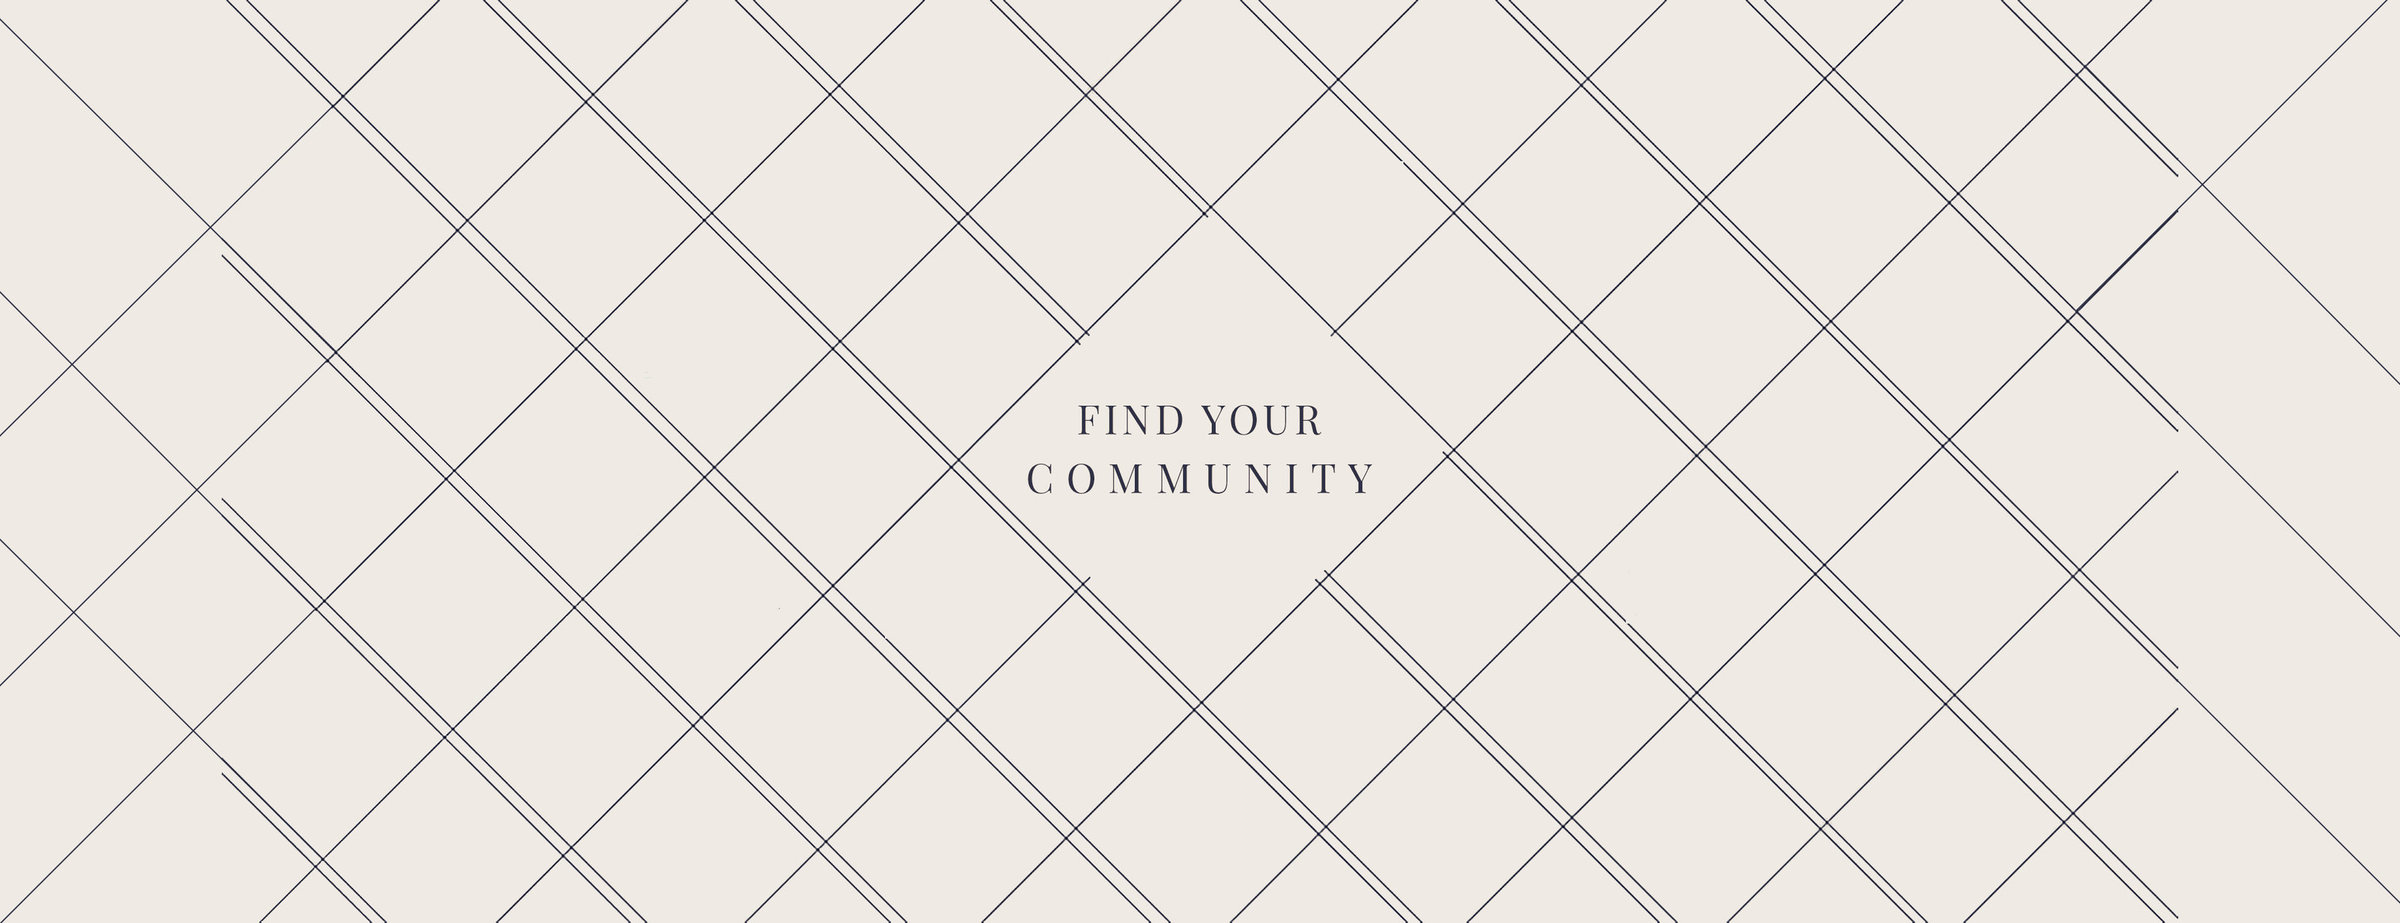 find community6